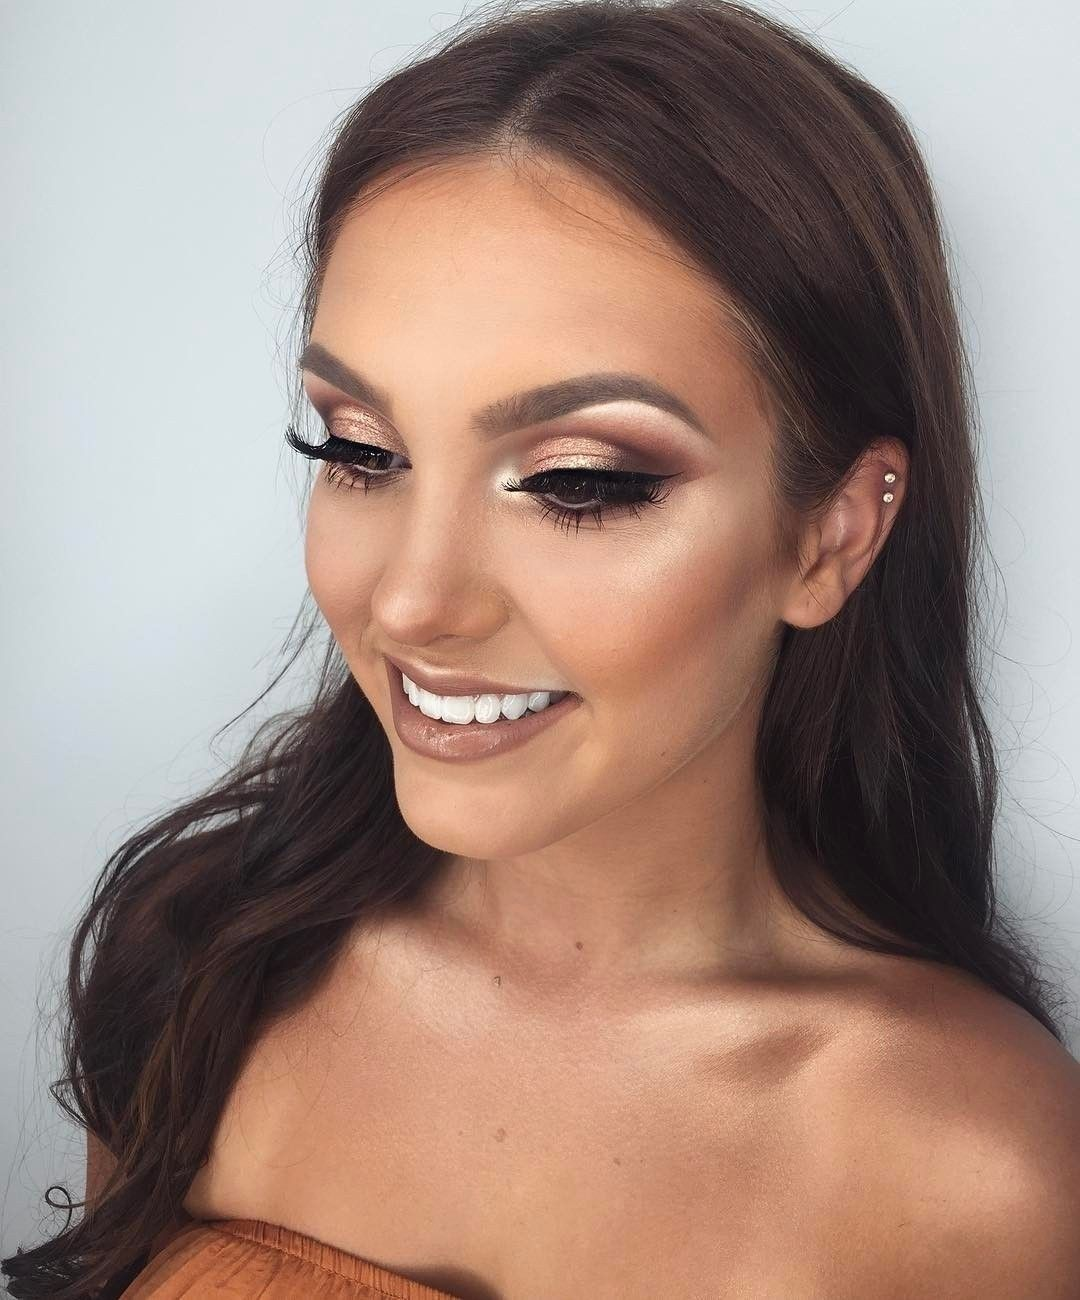 36 most professional makeup ideas for all occasions 2019